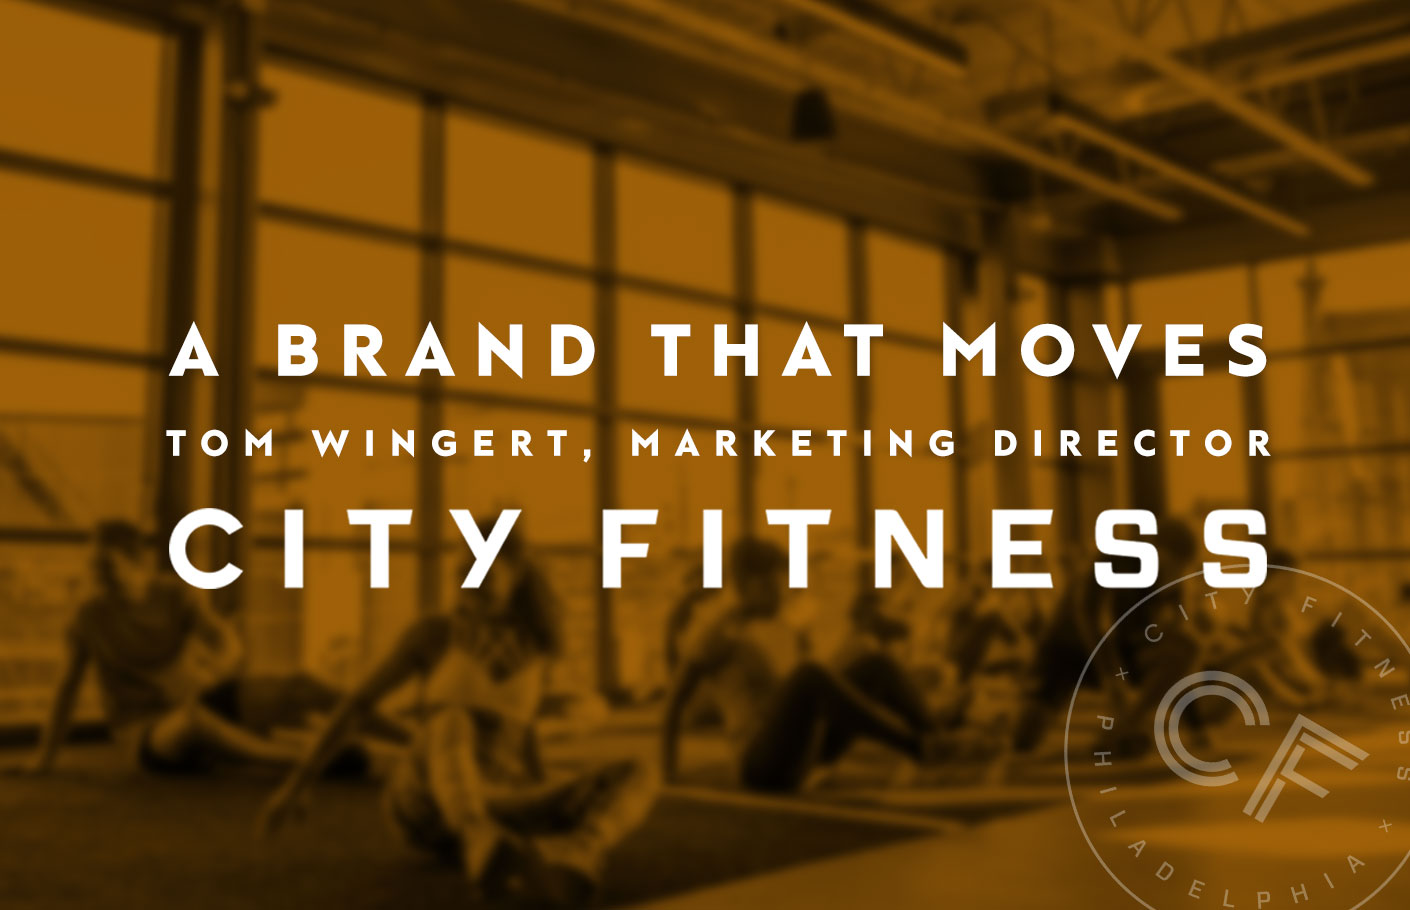 A Brand that Moves - Tom Wingert, Marketing Director of City Fitness